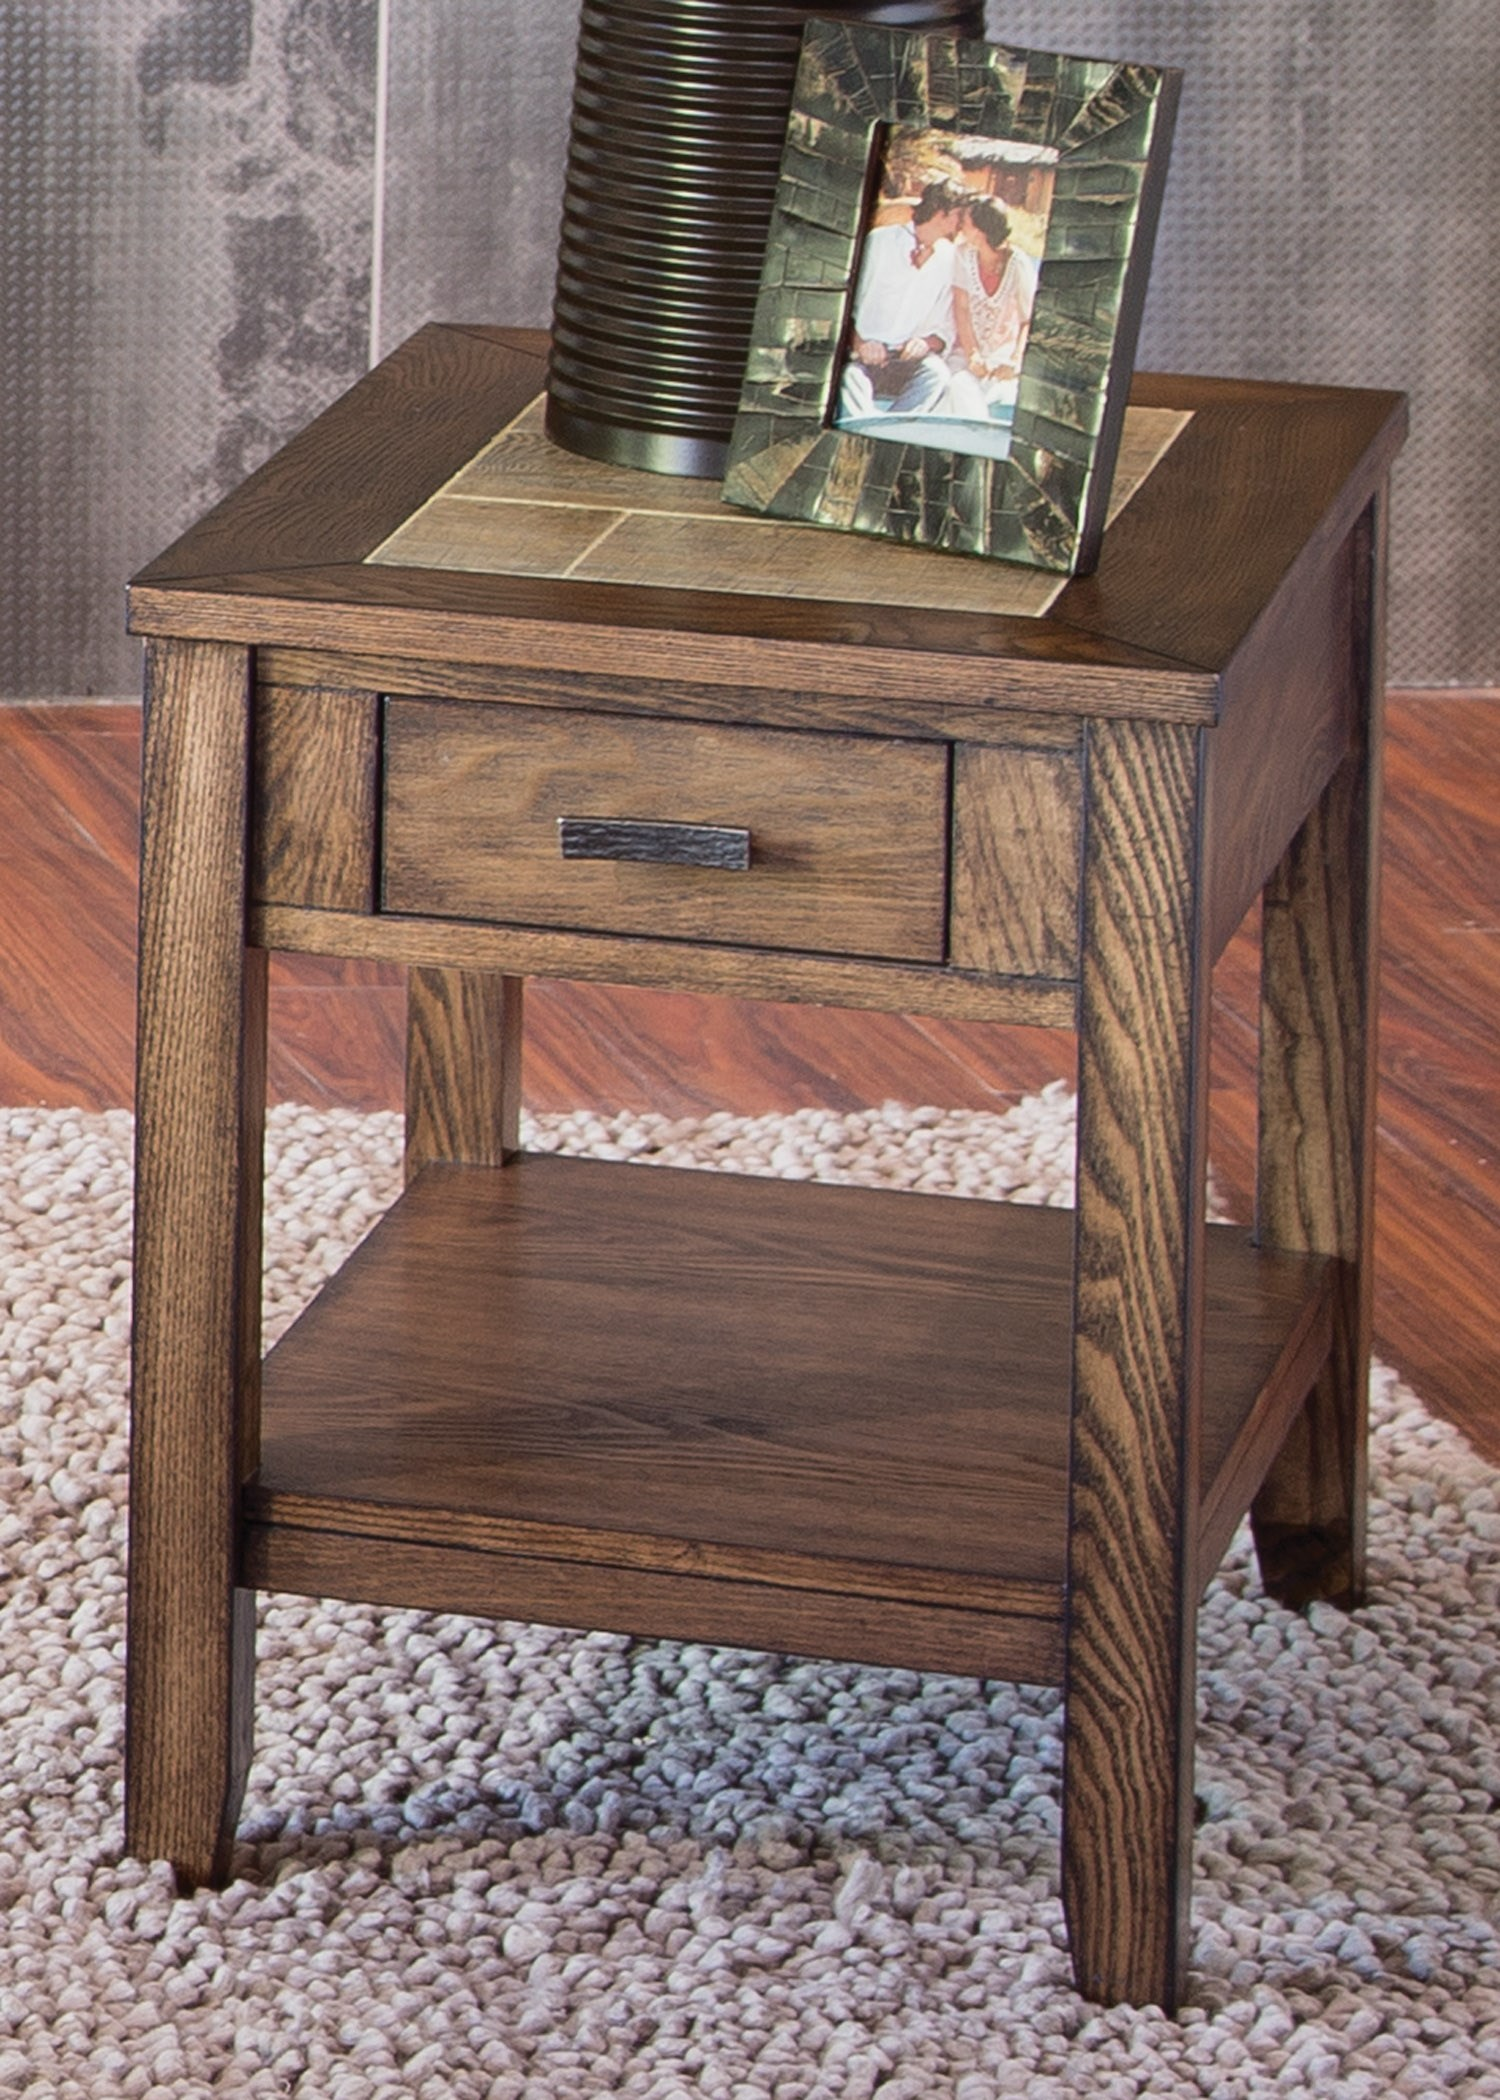 Liberty Furniture Mesa Valley Occasional Chair Side Table With Ceramic Tile  Top